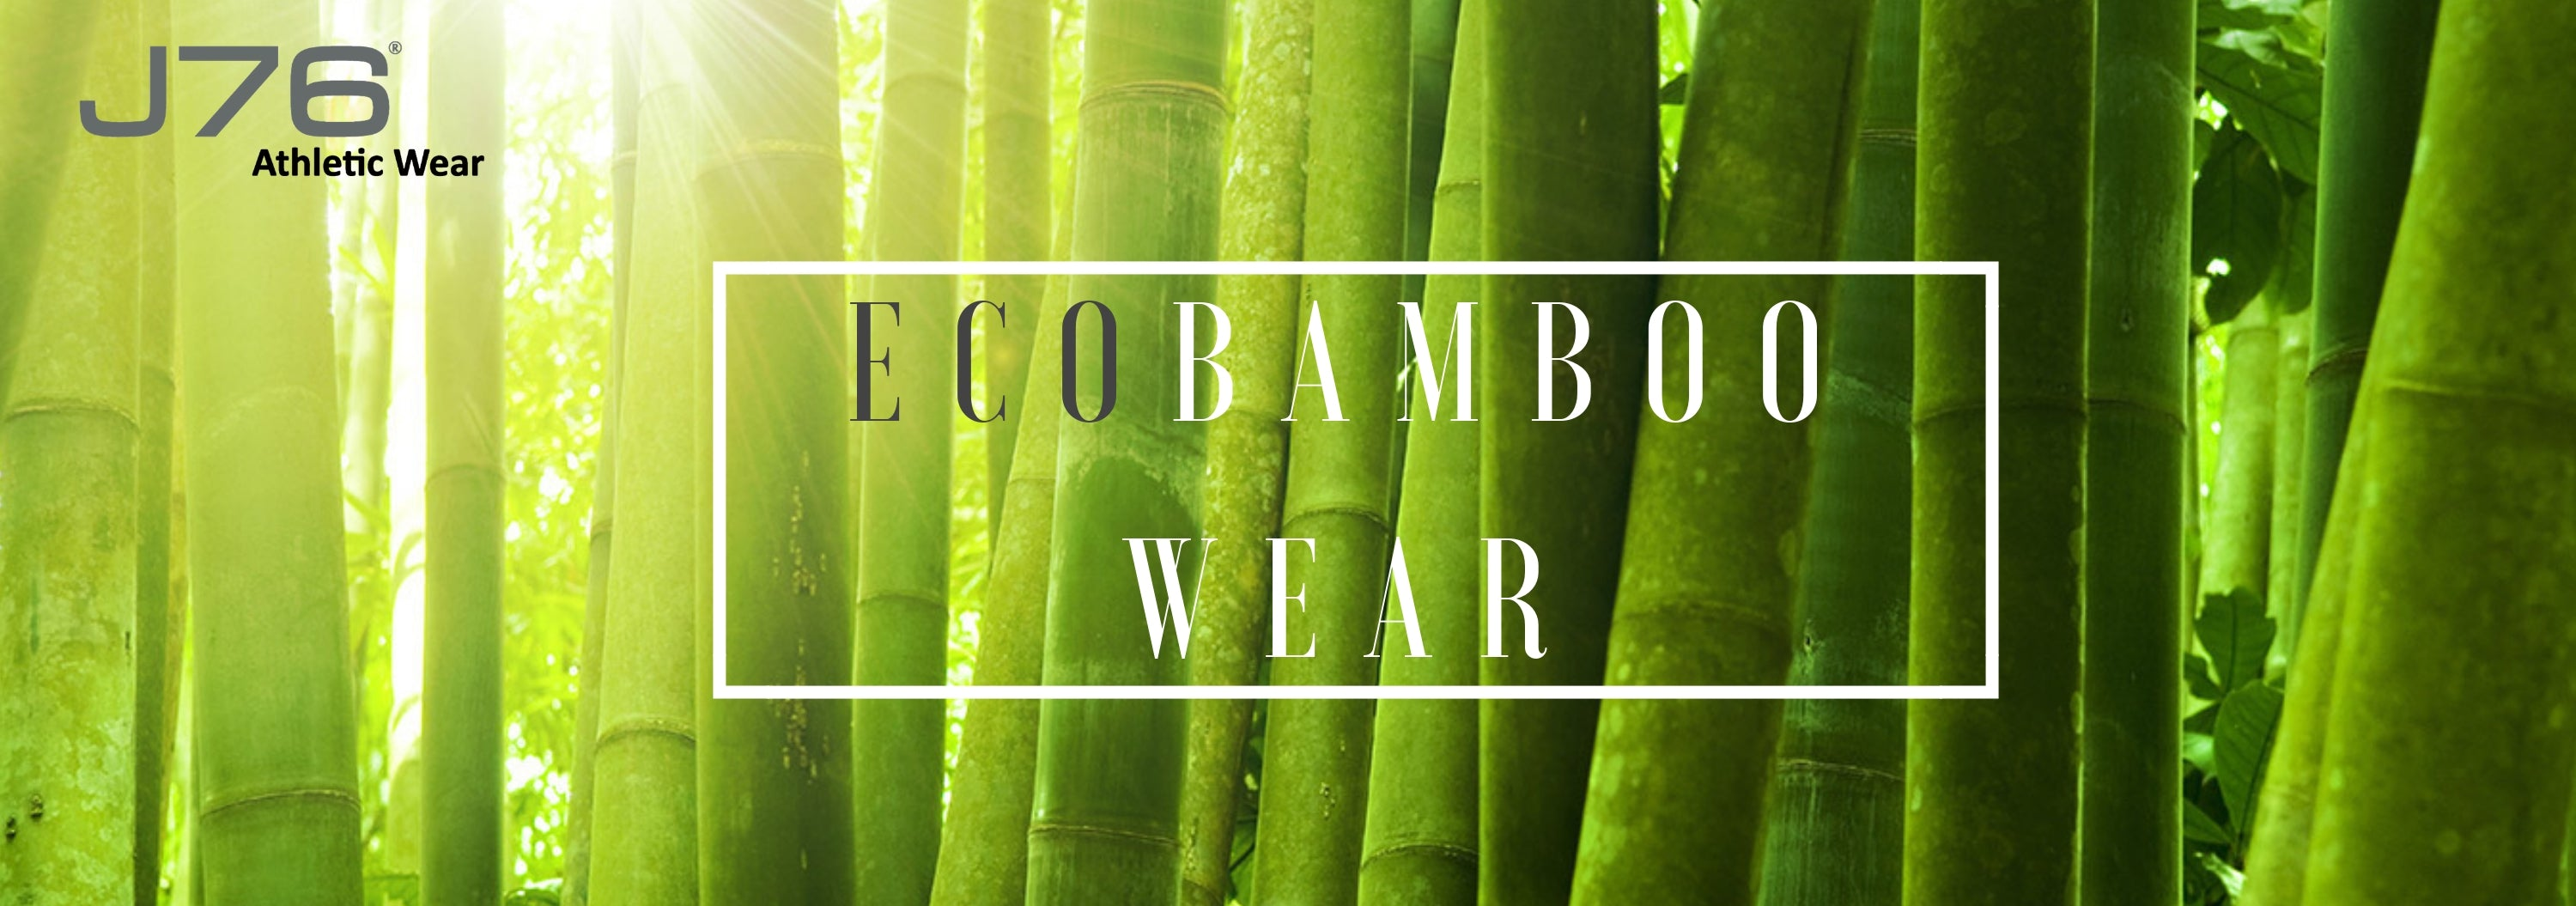 Benefit of Bamboo Fabric